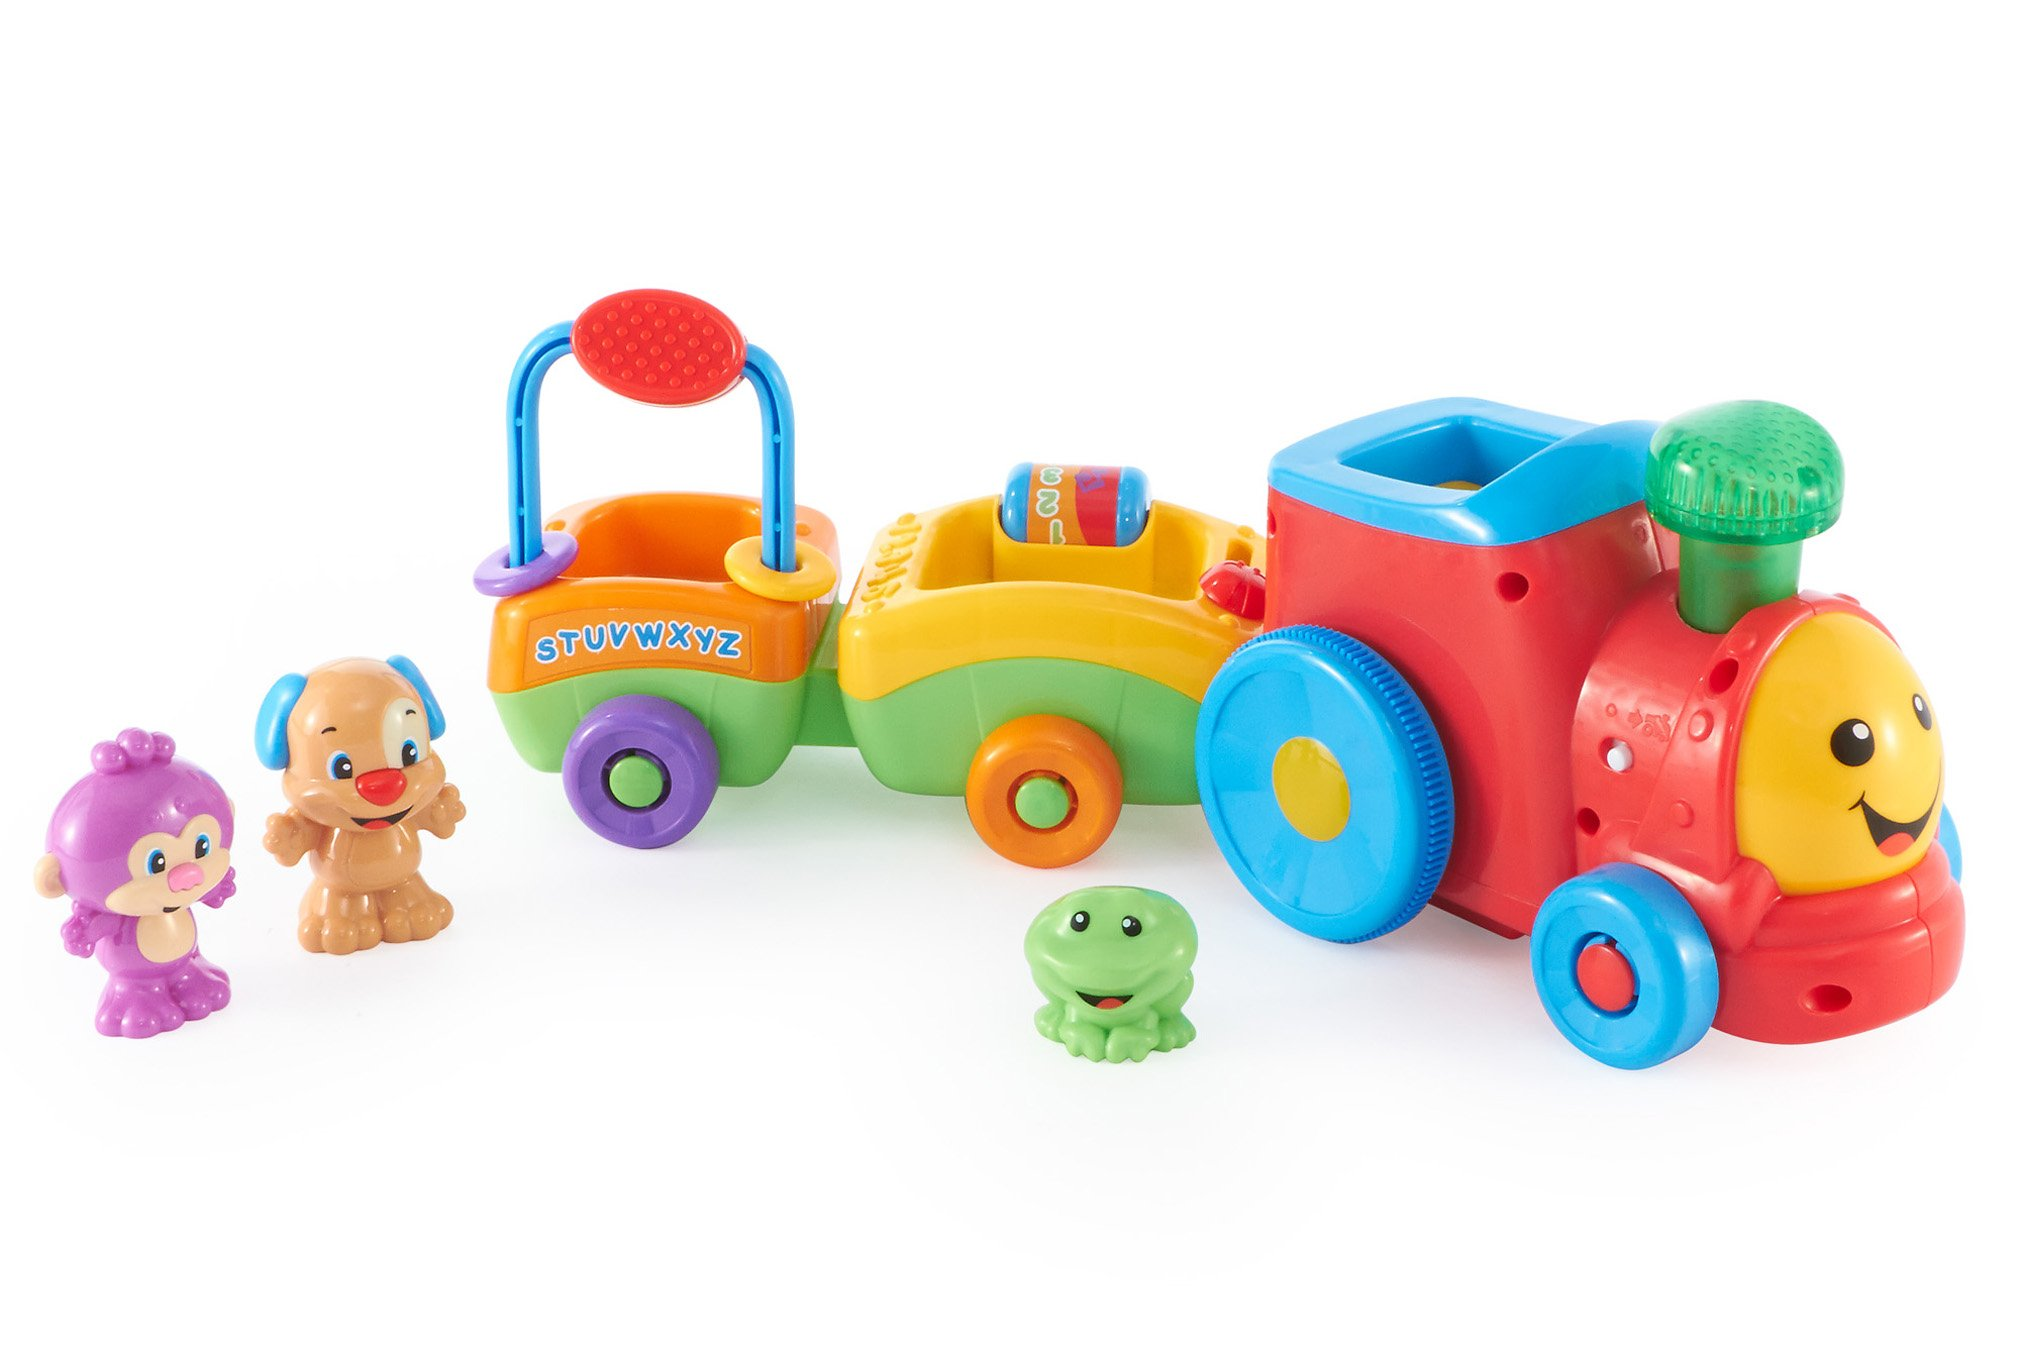 Fisher-Price Laugh & Learn Smart Stages Puppy's Smart Train by Fisher-Price (Image #27)